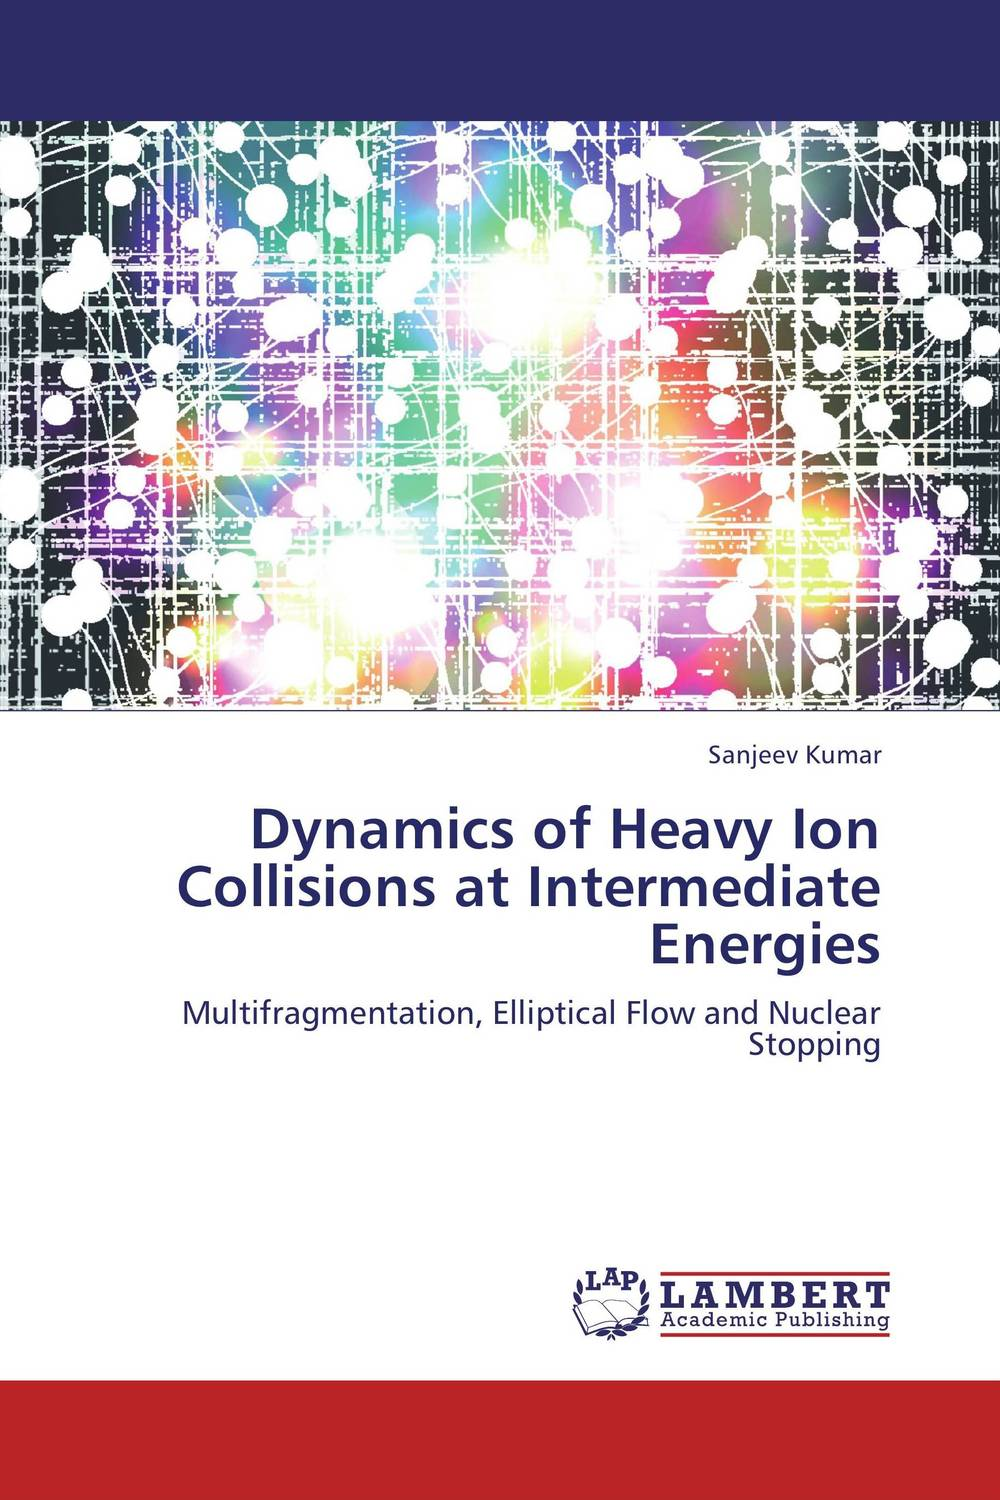 Dynamics of Heavy Ion Collisions at Intermediate Energies lidiya strautman introduction to the world of nuclear physics